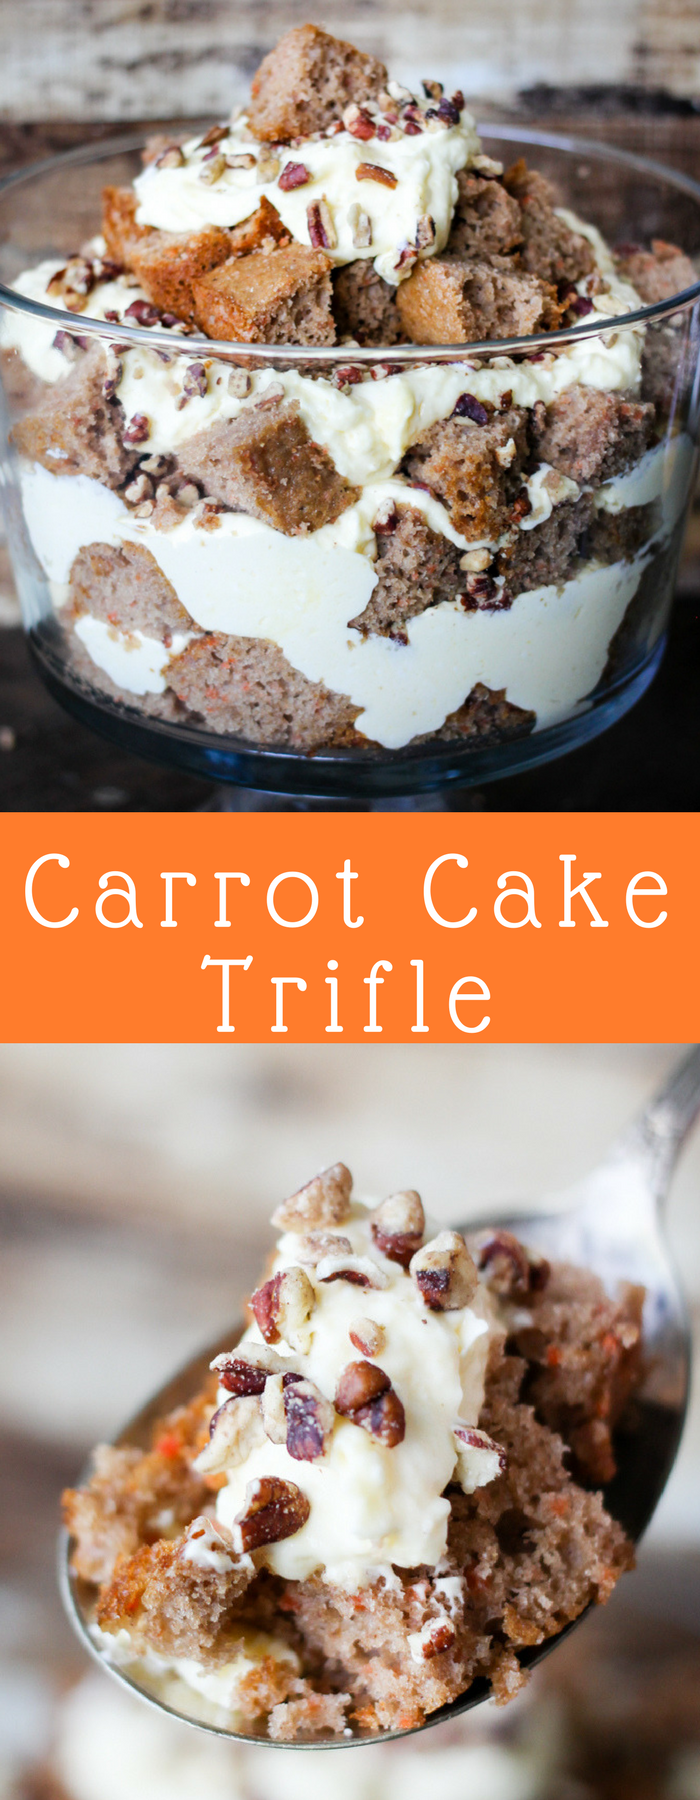 A Carrot Cake Trifle is the ultimate easy dessert! Using boxed or homemade carrot cake, layering a delicious cream cheese mixture, and topping with walnuts make the perfect quick dessert! Everyone will be asking for carrot cake this simple recipe!